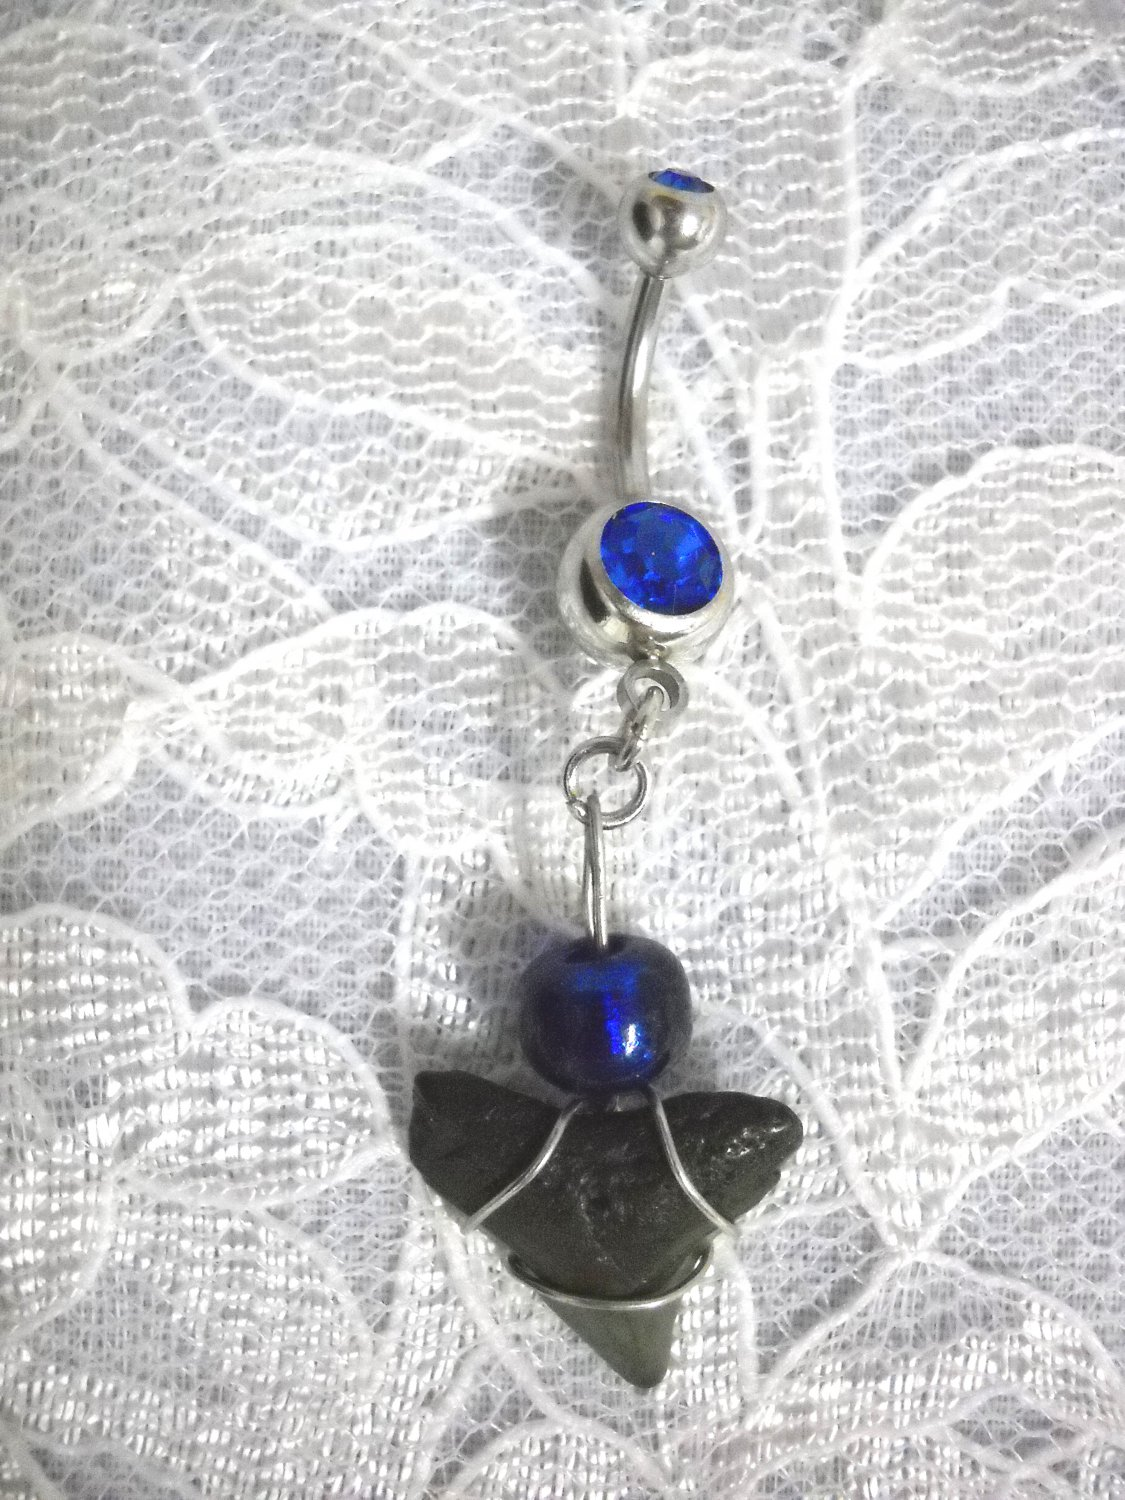 REAL FOSSIL SHARK TOOTH DANGLING CHARM & COBALT BLUE BEAD & CZ GEM 14g BELLY NAVEL RING